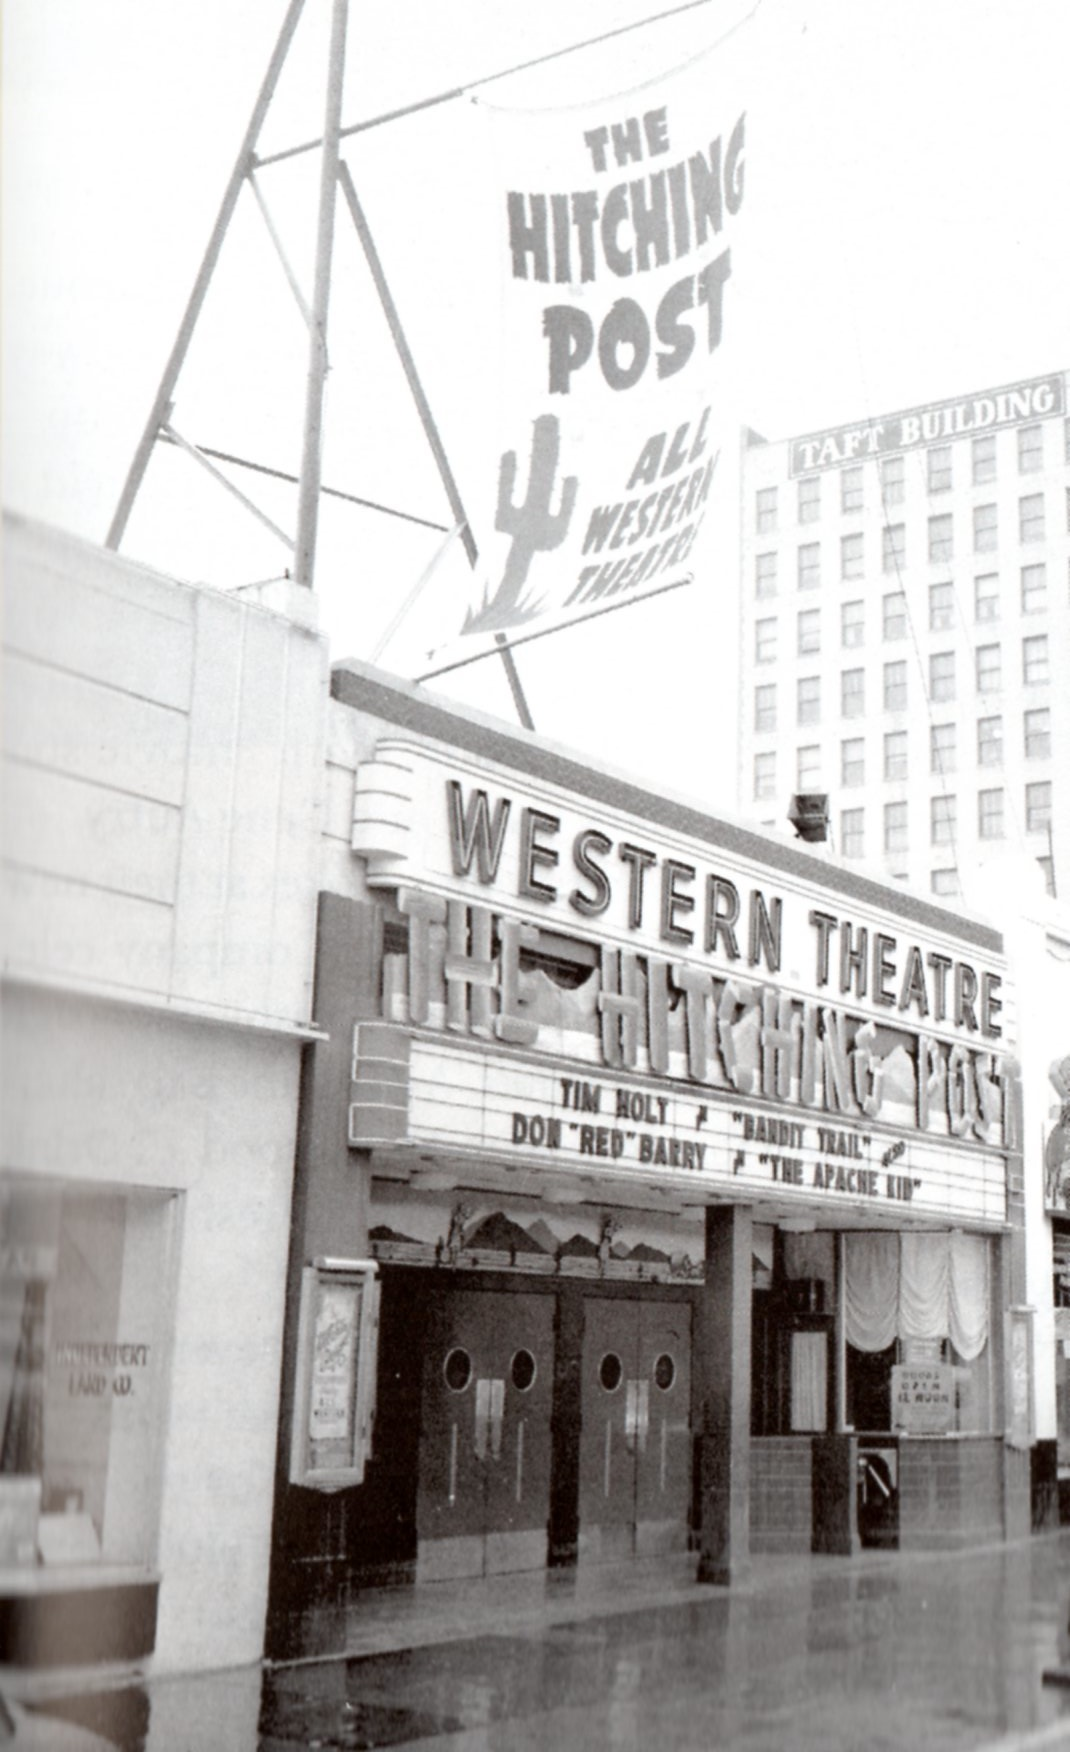 White apron brea ca - Hitching Post Hollywood Blvd 1941